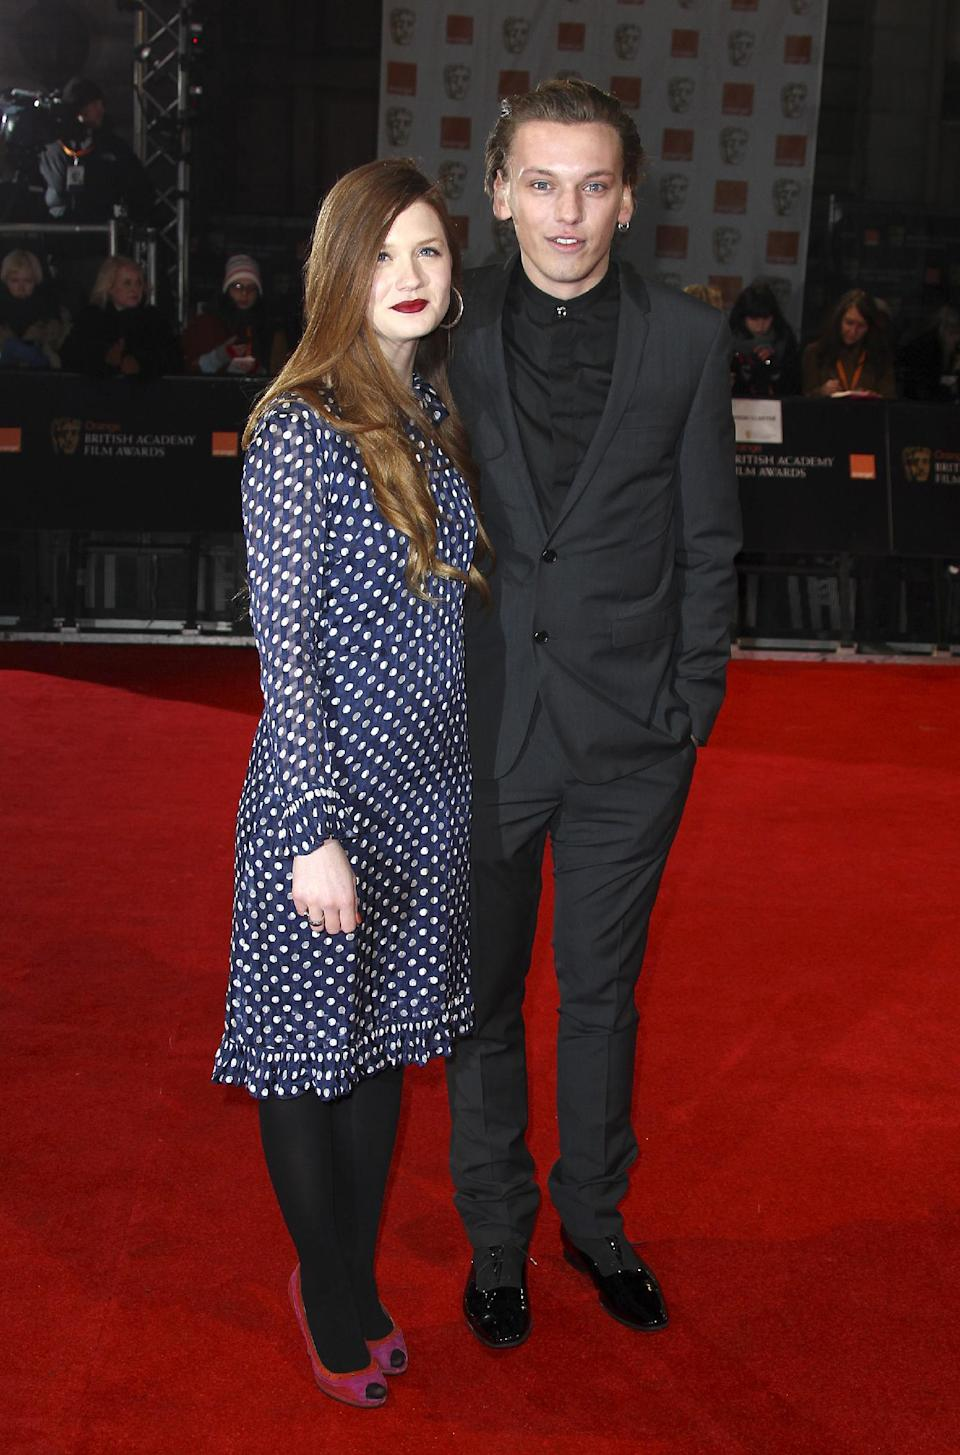 Actress Bonnie Wright, left, and actor Jamie Campbell Bower, right, arrives for the BAFTA Film Awards 2012, at The Royal Opera House in London, Sunday, Feb. 12, 2012. (AP Photo/Joel Ryan)